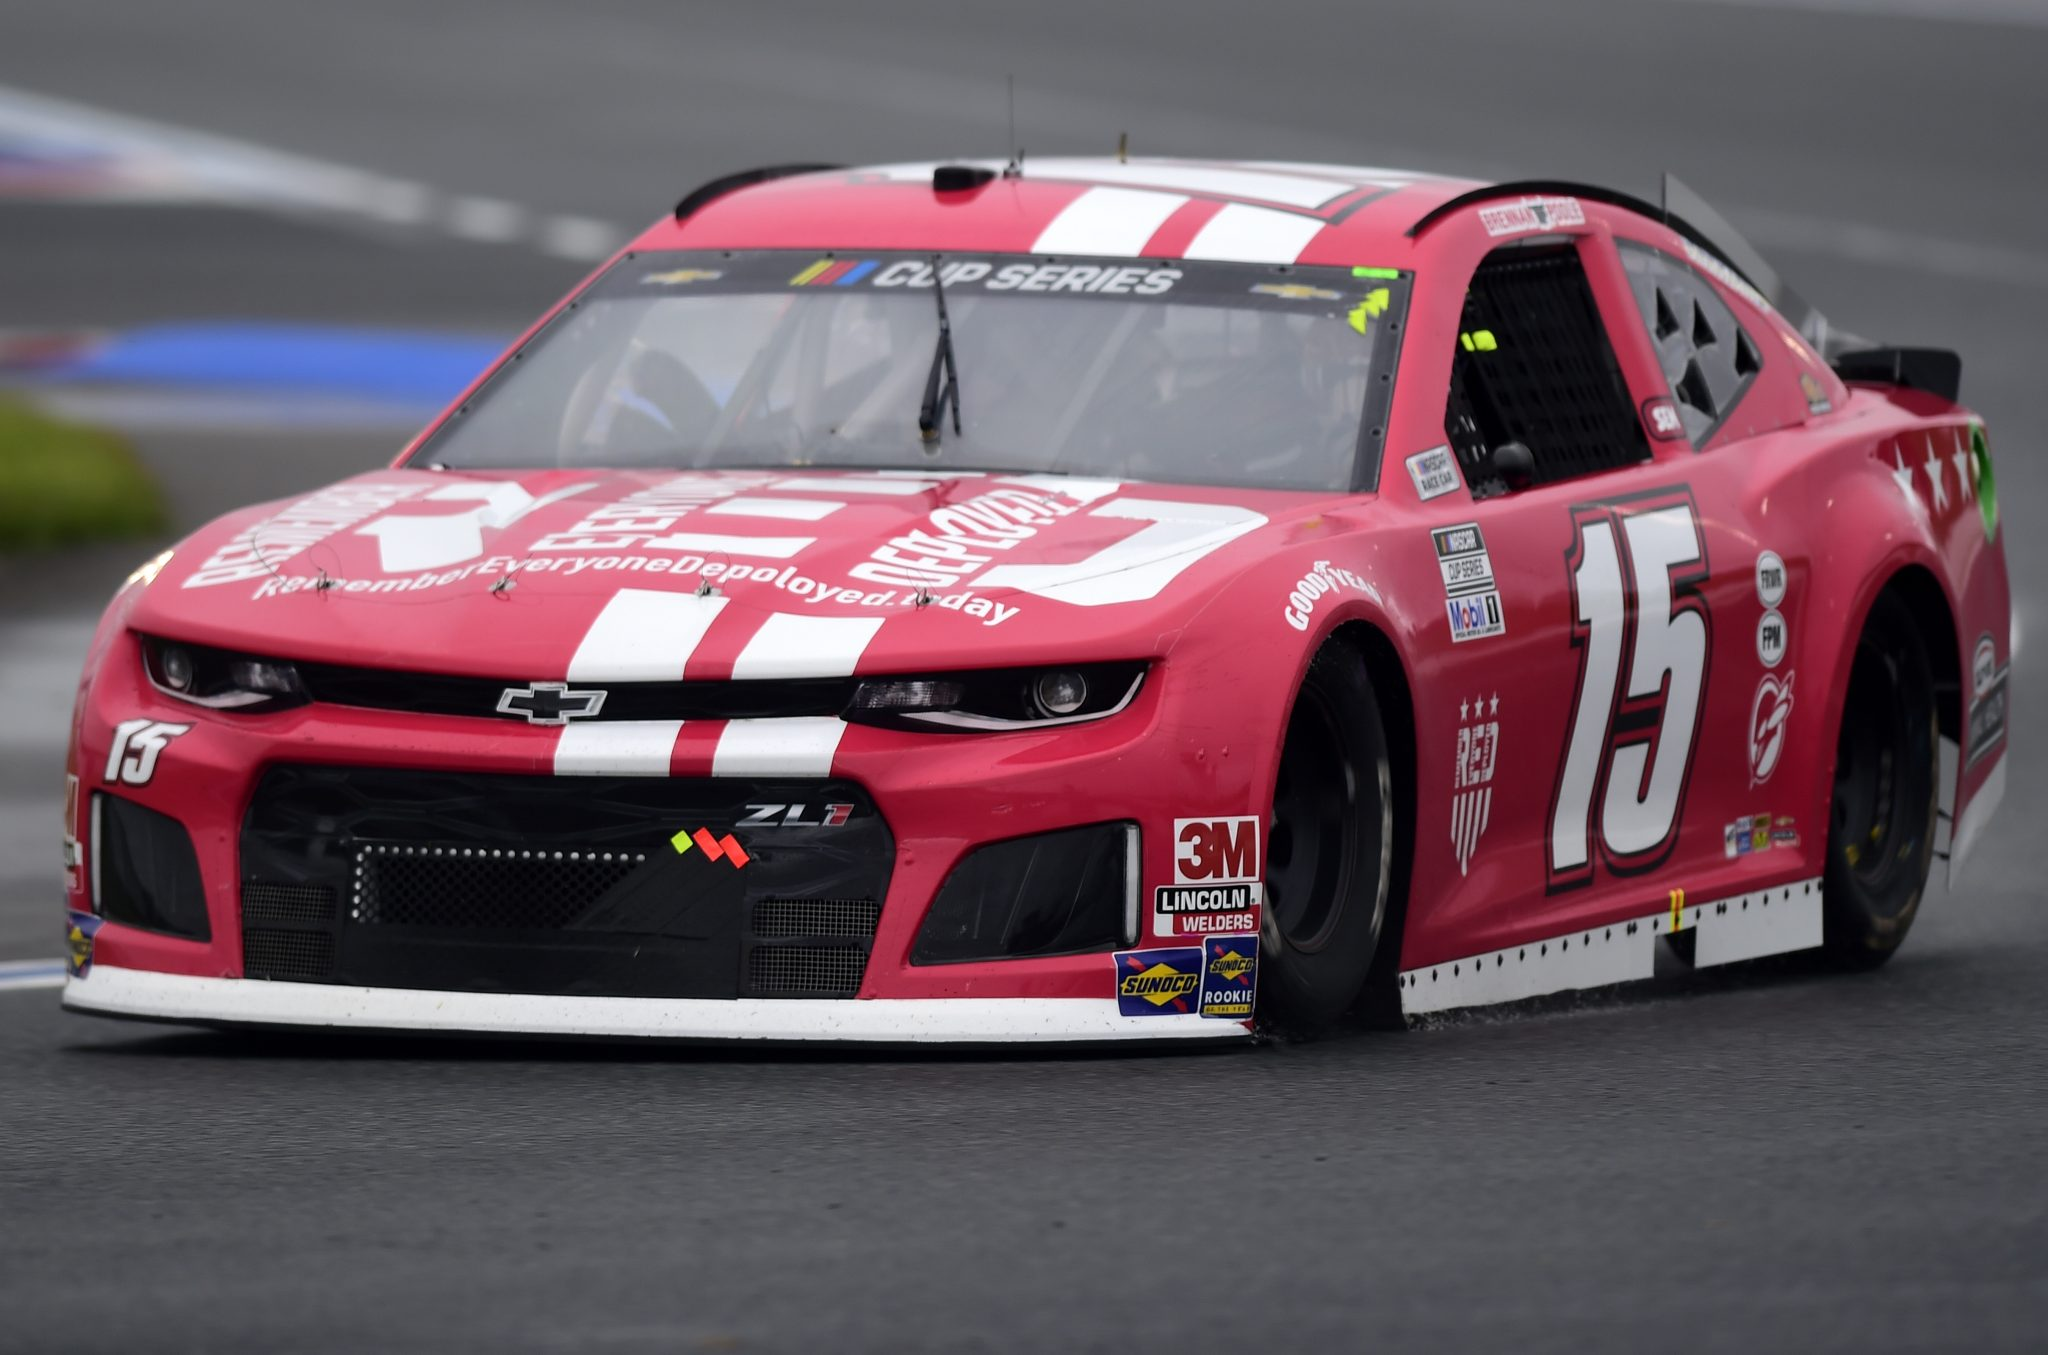 CONCORD, NORTH CAROLINA - OCTOBER 11: Brennan Poole, driver of the #15 Remember Everyone Deployed Chevrolet, drives during the NASCAR Cup Series Bank of America ROVAL 400 at Charlotte Motor Speedway on October 11, 2020 in Concord, North Carolina. (Photo by Jared C. Tilton/Getty Images) | Getty Images